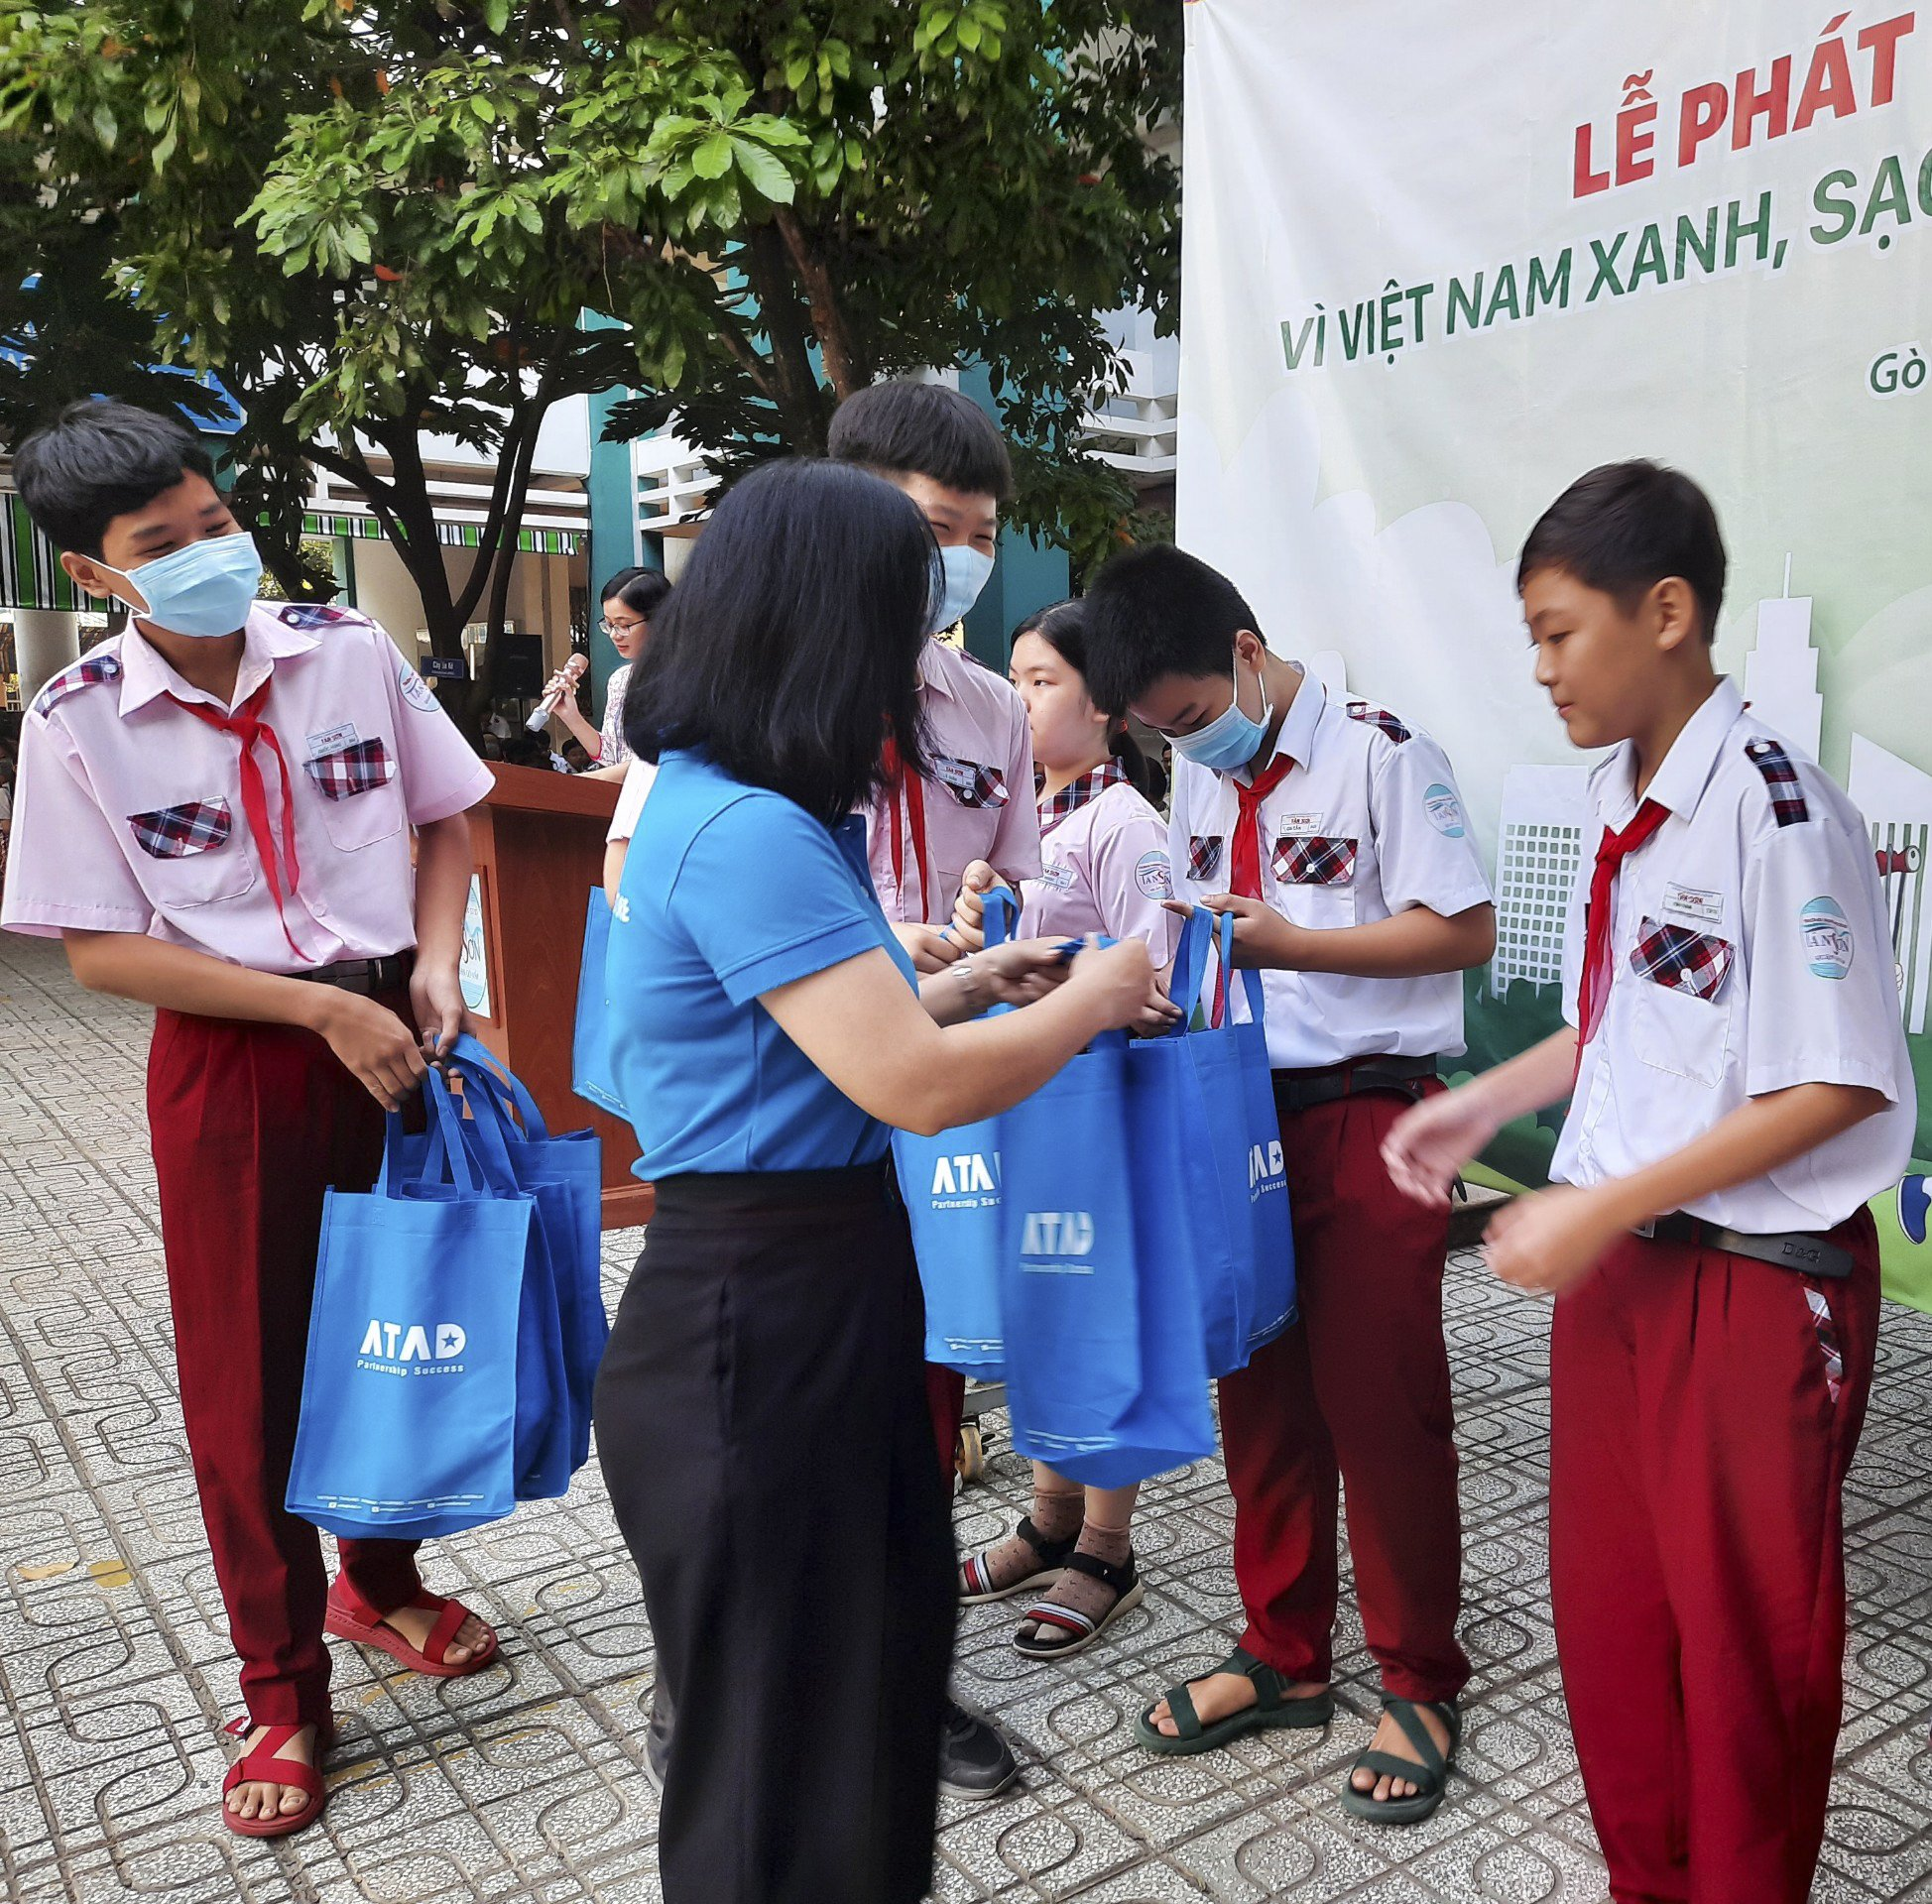 ATAD presented shoes for disadvantaged students